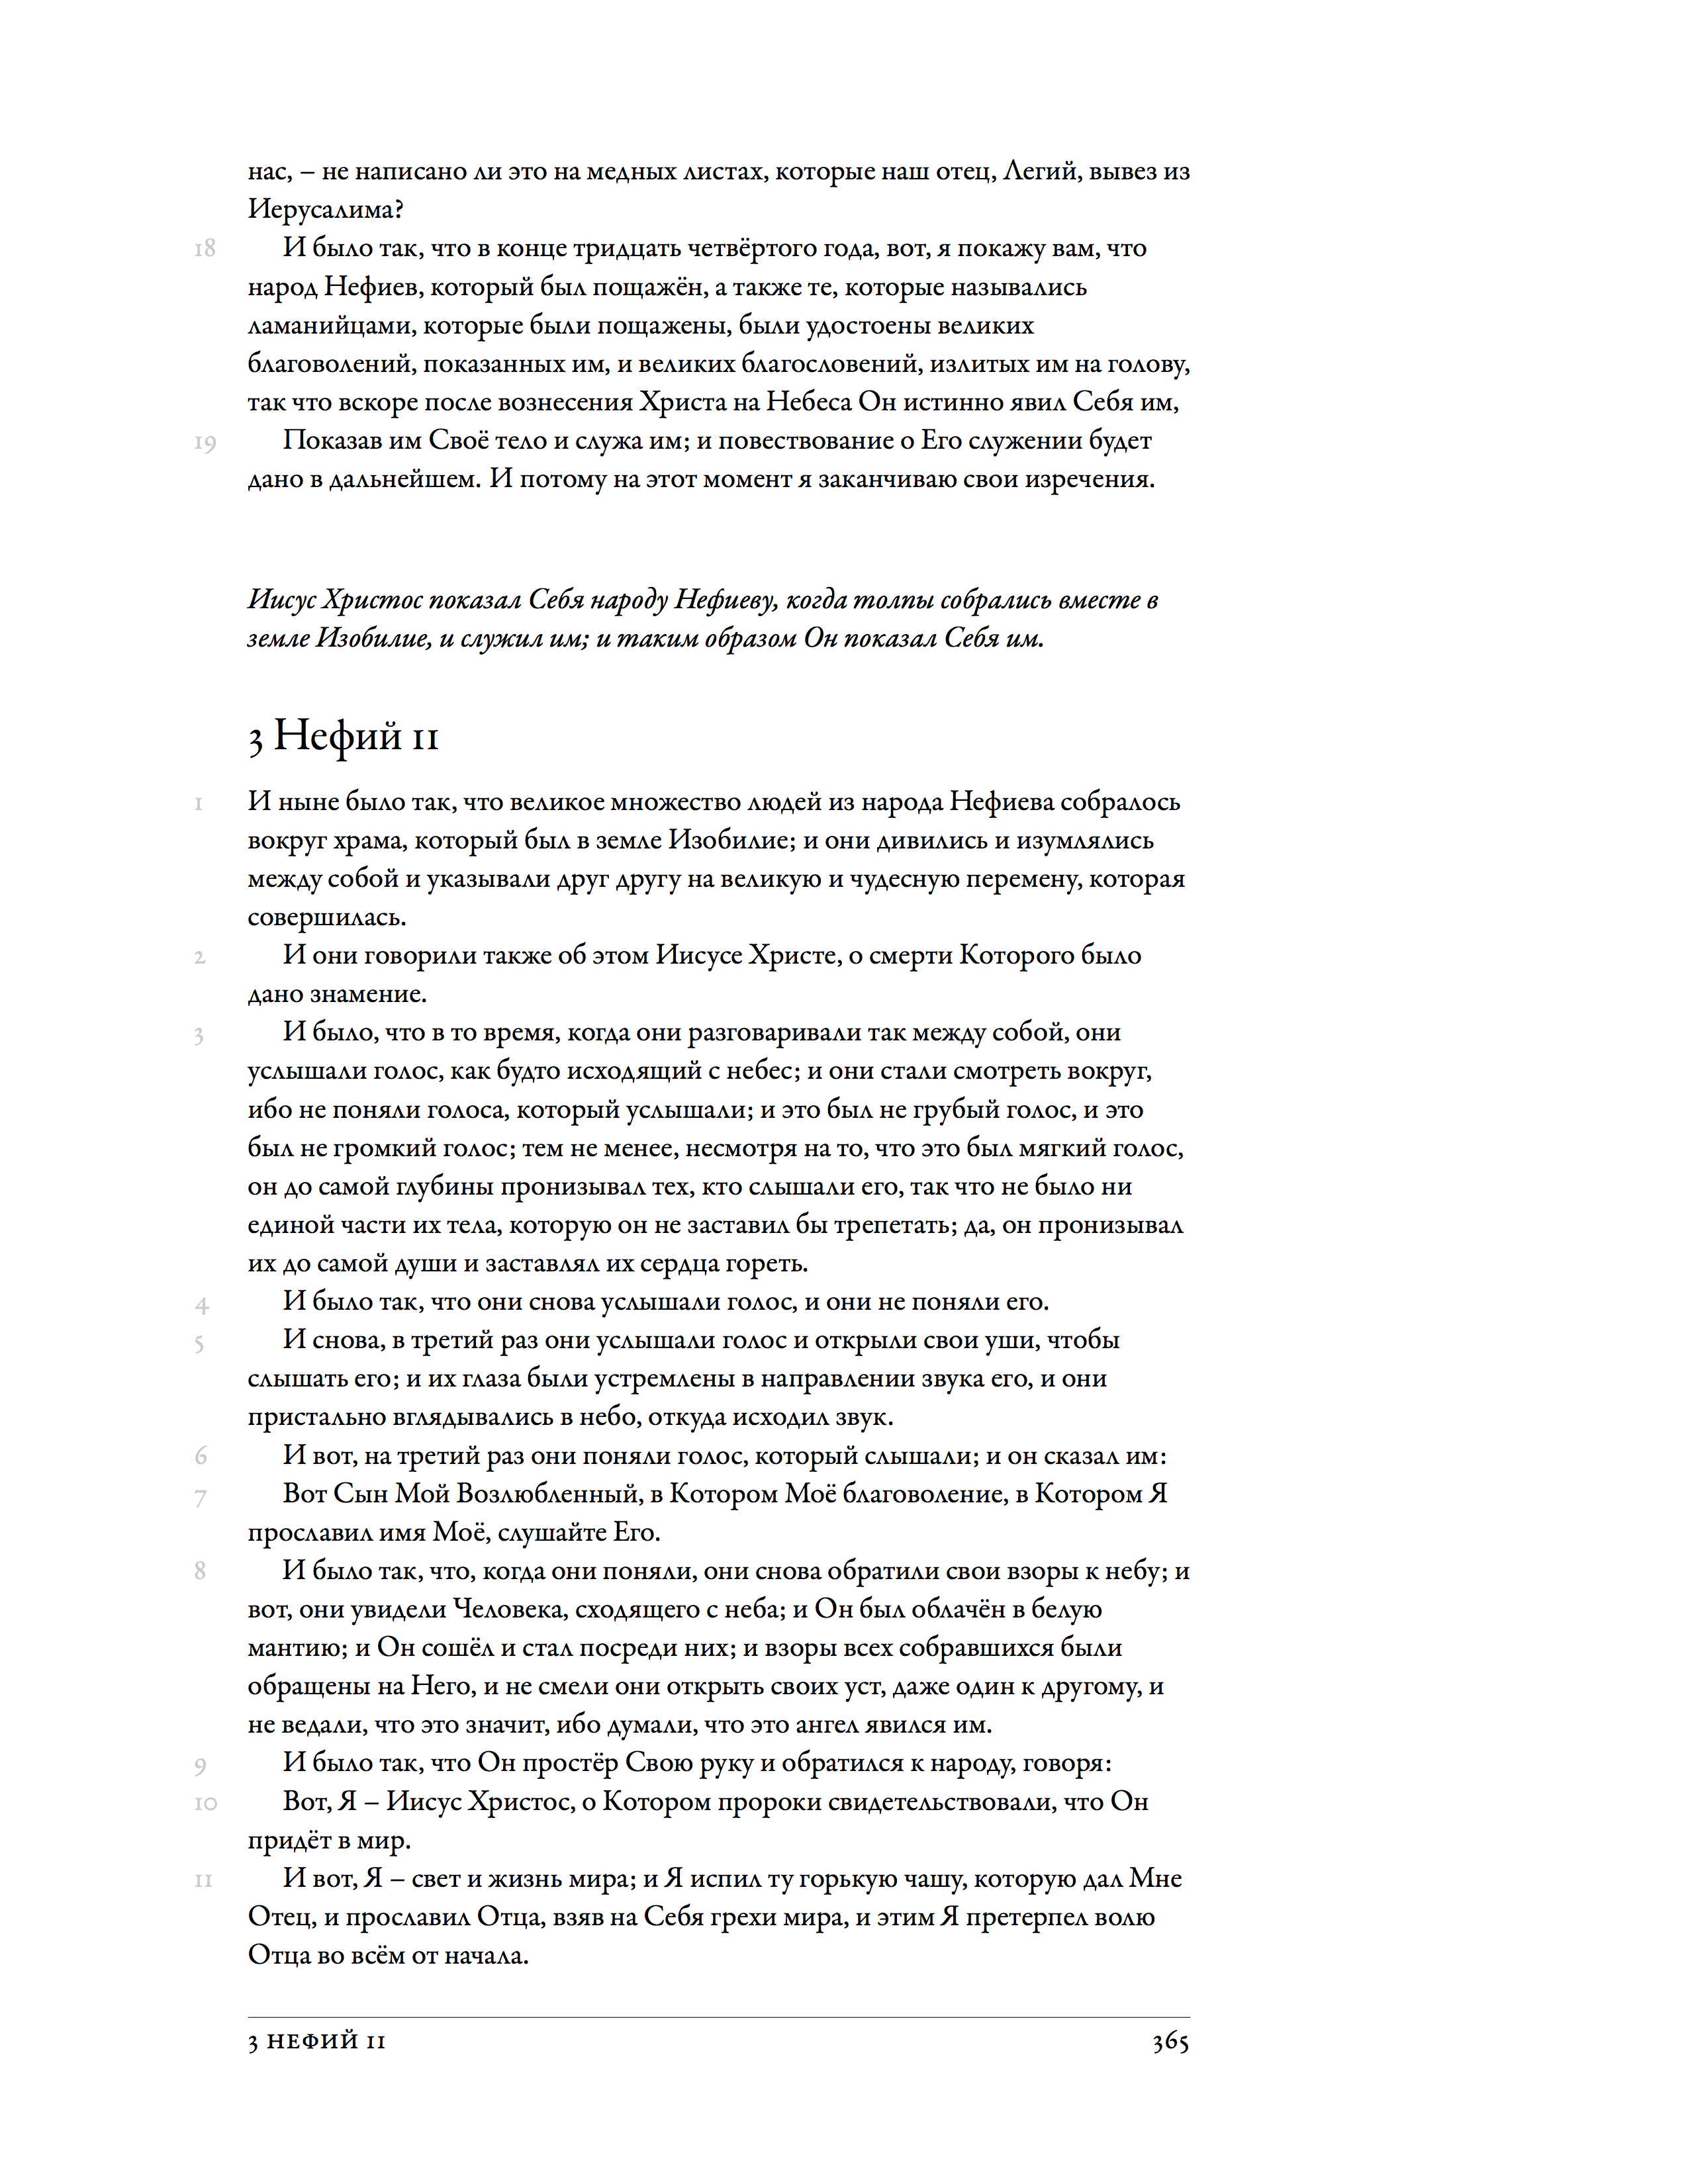 projects/study-edition/rus-bofm/study-edition-rus-bofm-02.png